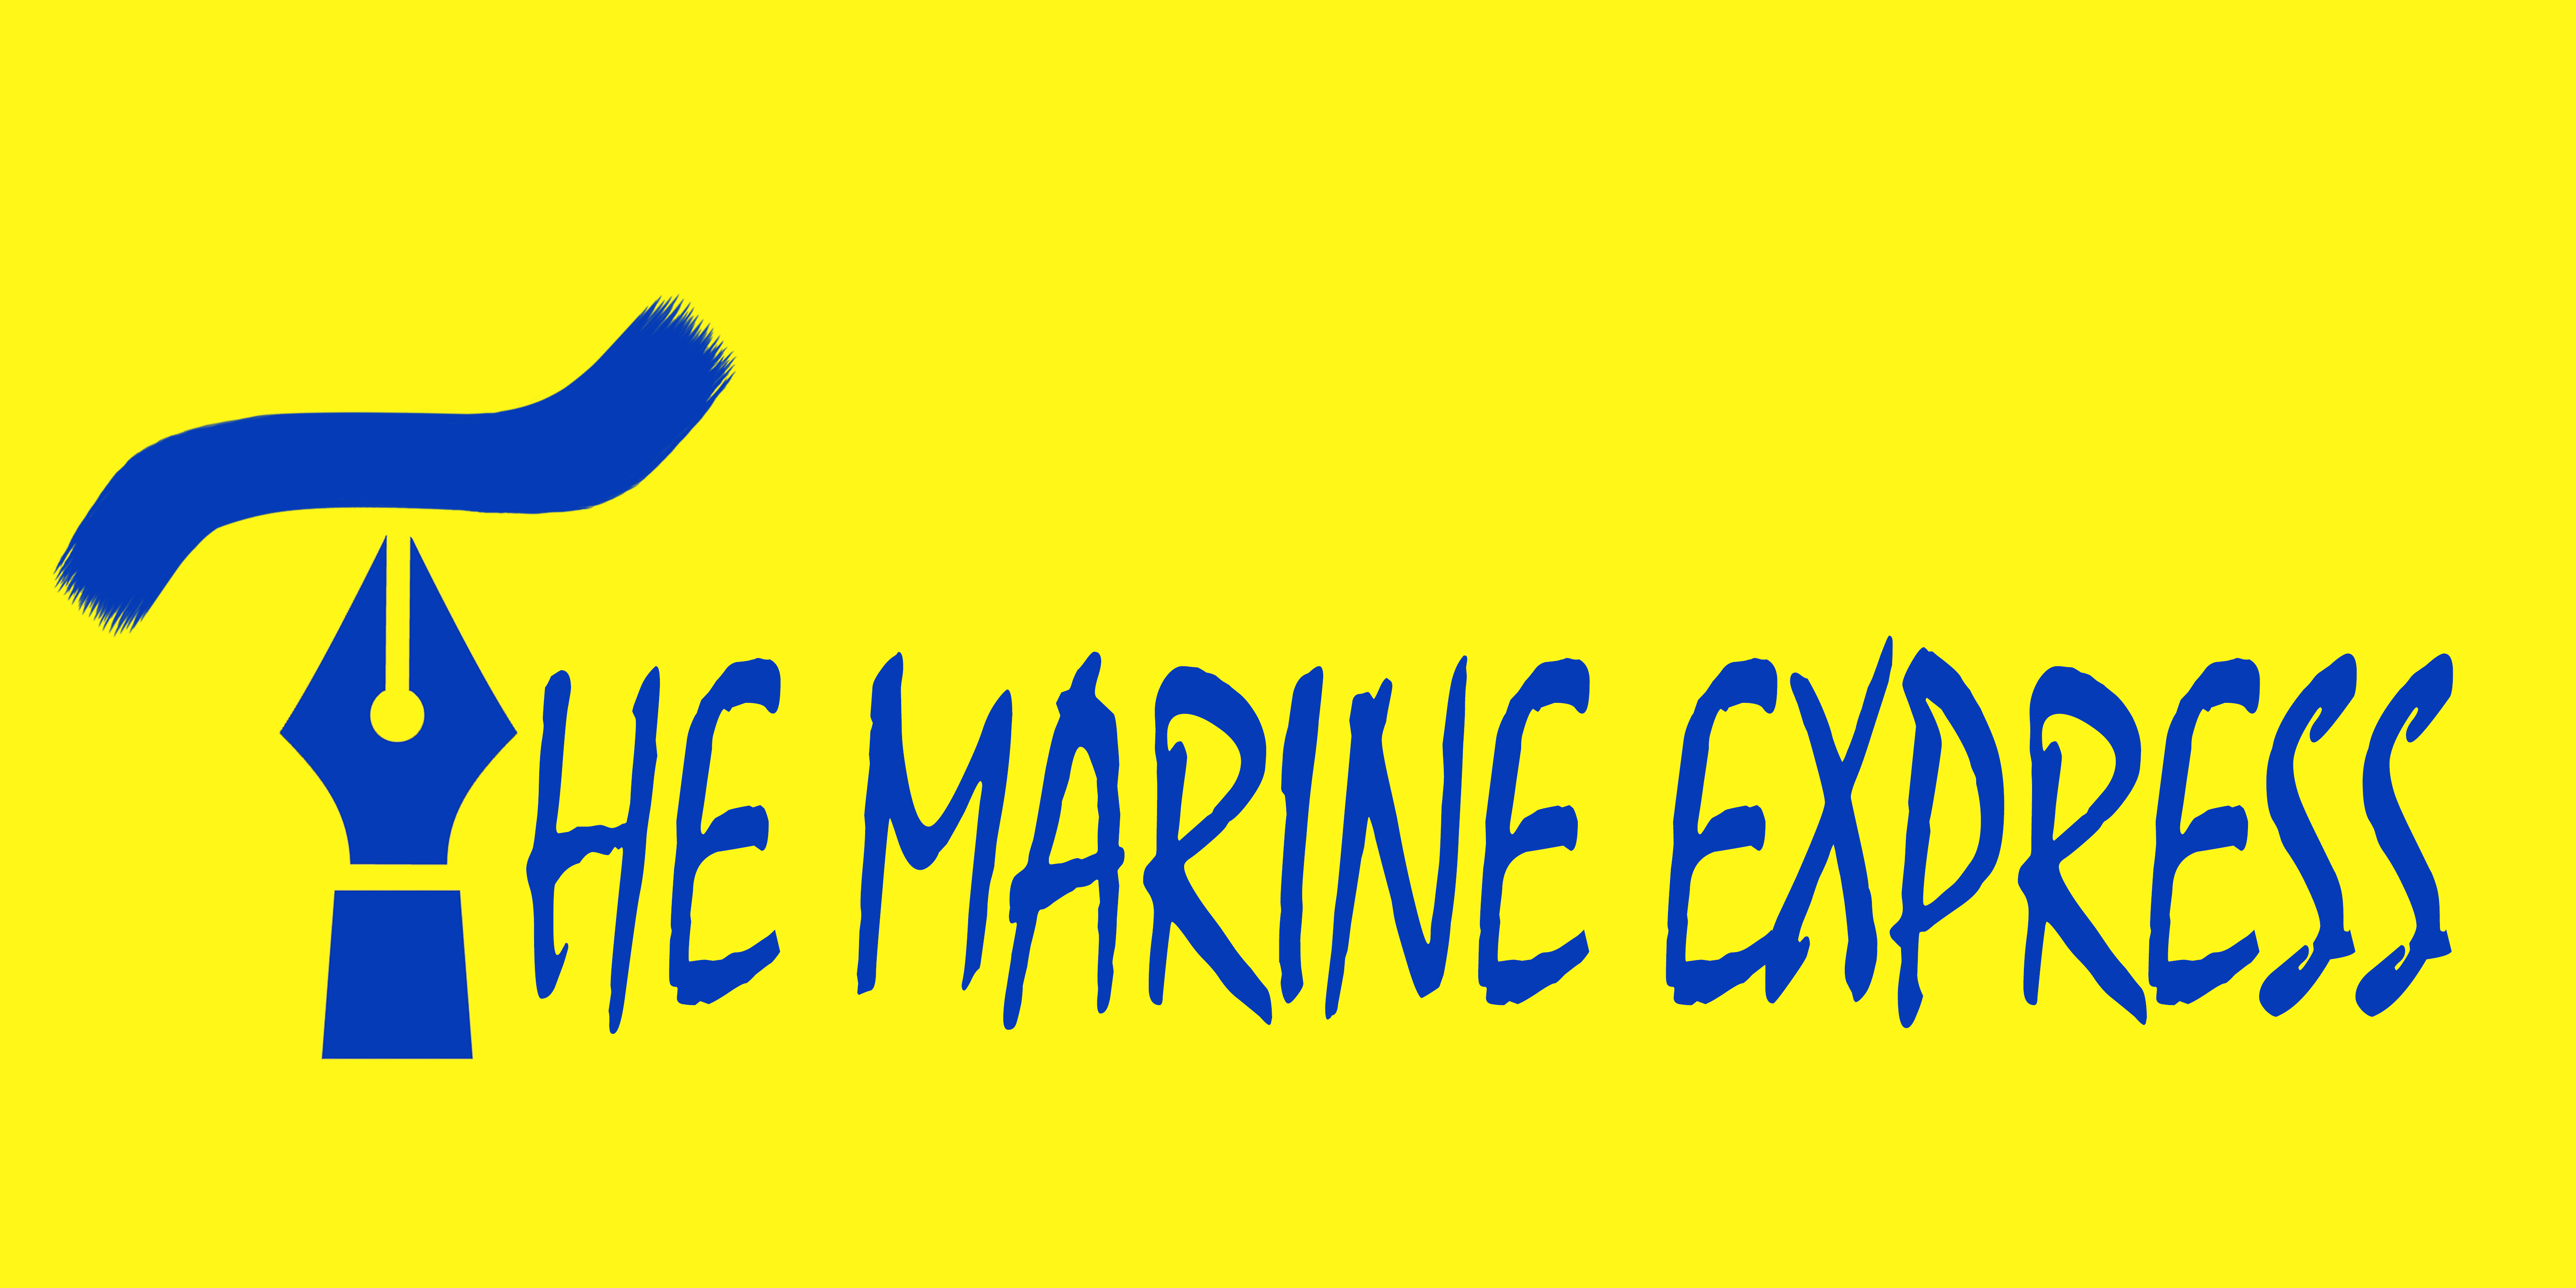 BEING CAUTIOUS IS THE PARENT OF SAFE SAILING !! - The marine express